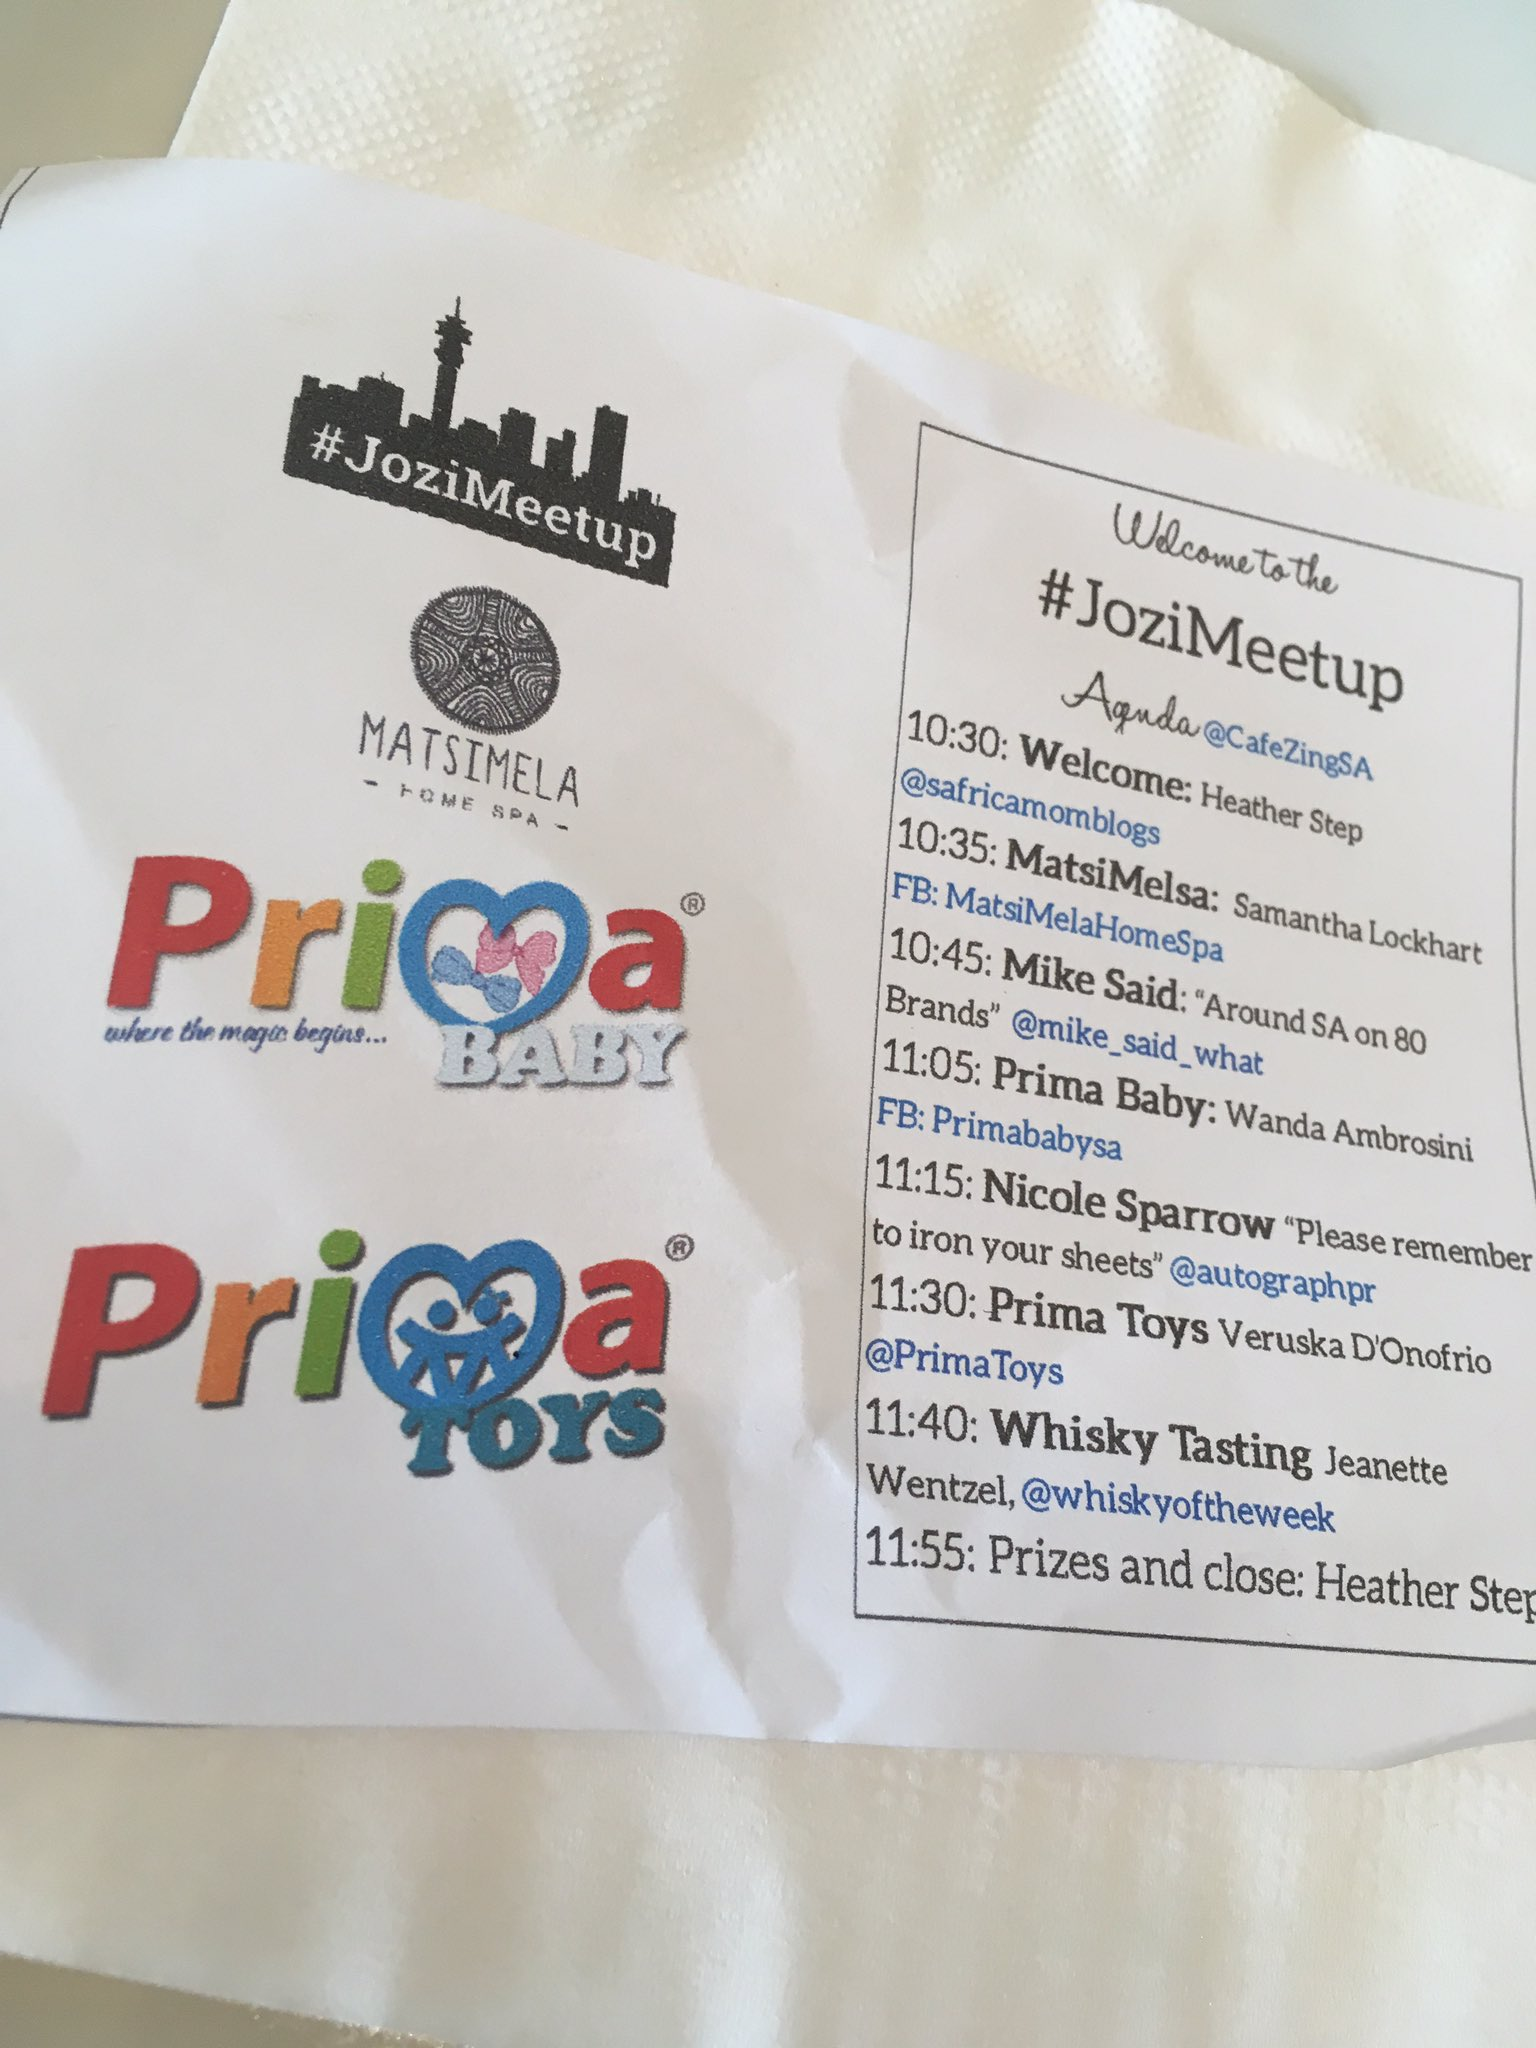 fantastic lineup! Thoroughly enjoying - very insightful and interesting!!  #JoziMeetup #samomblogs @safricamomblogs @CafeZingSA https://t.co/tlYkQe1A86